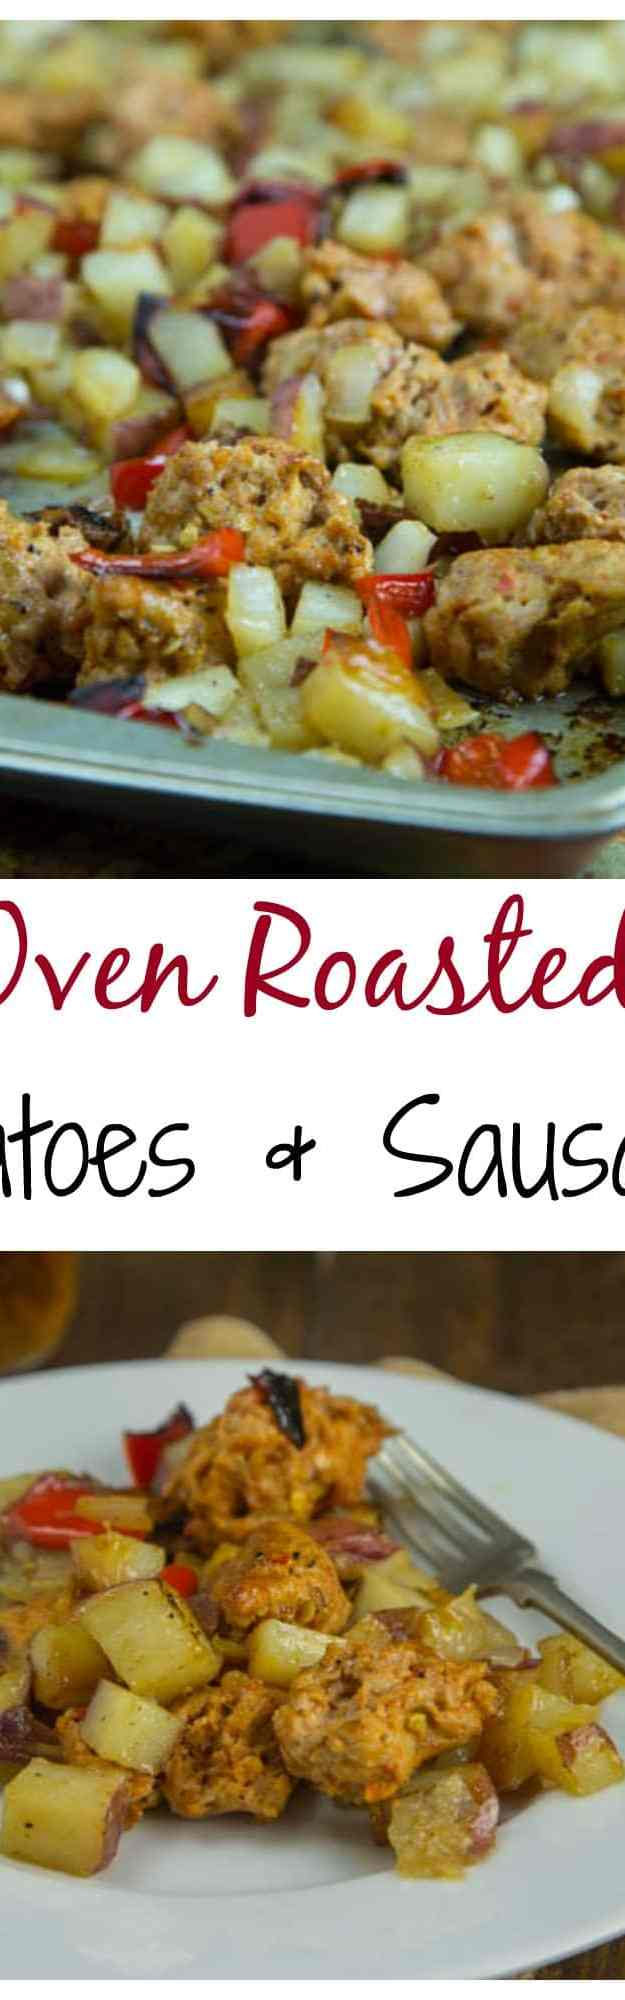 Oven Roasted Potatoes and Sausage - Crispy oven roasted potatoes, peppers and onions, with your favorite sausage. Great one pan meal for any night of the week.